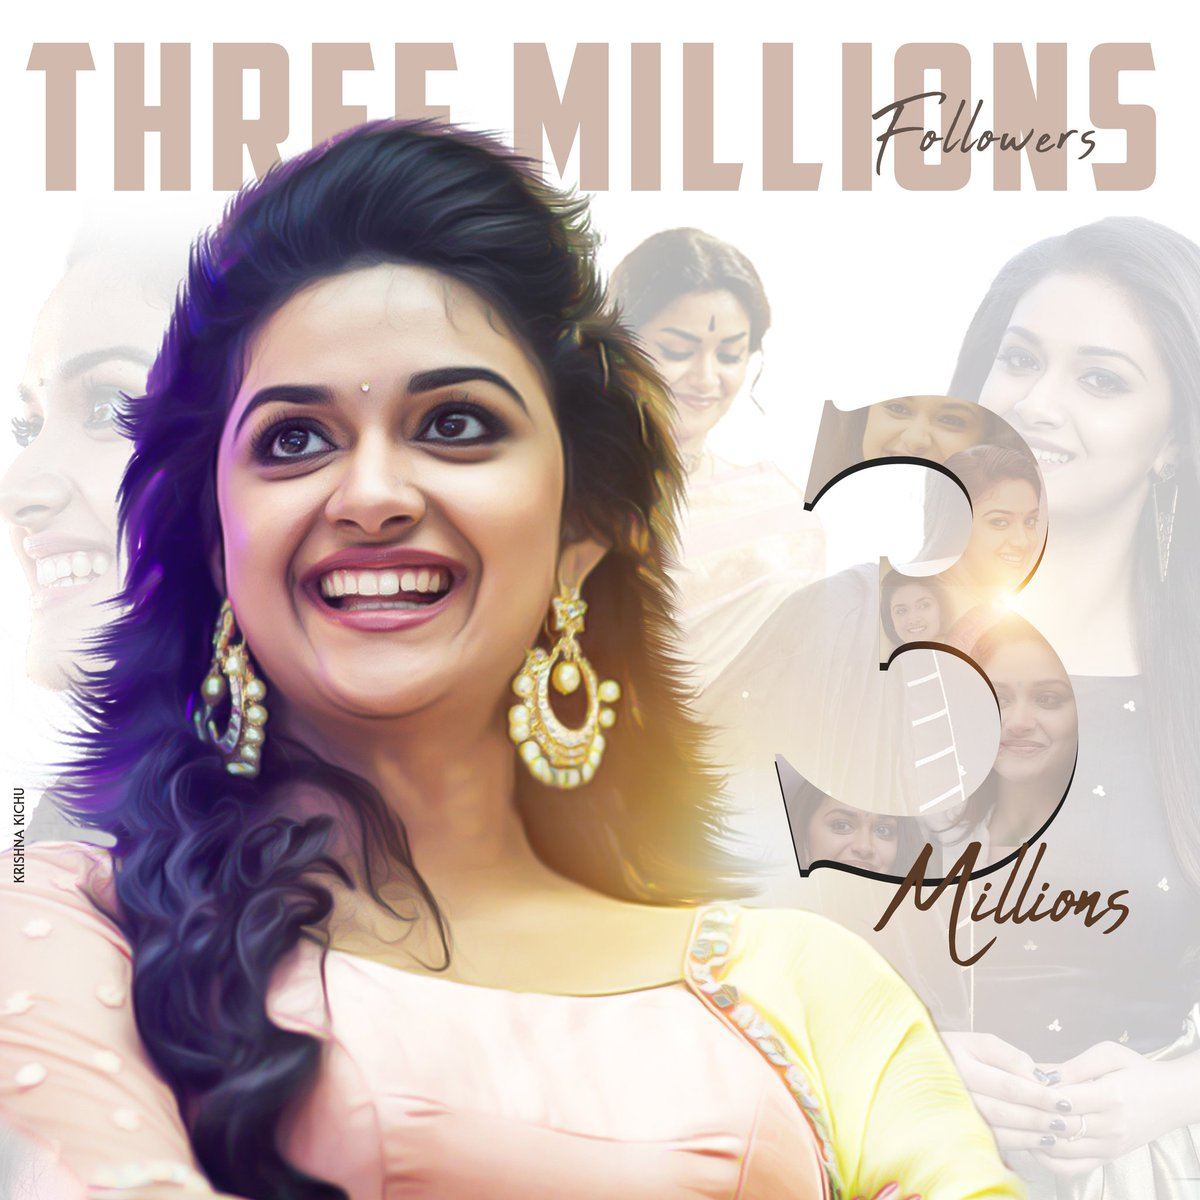 Our queen @KeerthyOfficial  Twitter followers @KeerthyOfficial  #Keerthysuresh  #KeerthyAdvBdayTrendOnJuly8 #3YearsForNinnukoripic.twitter.com/Y628jFpJB8